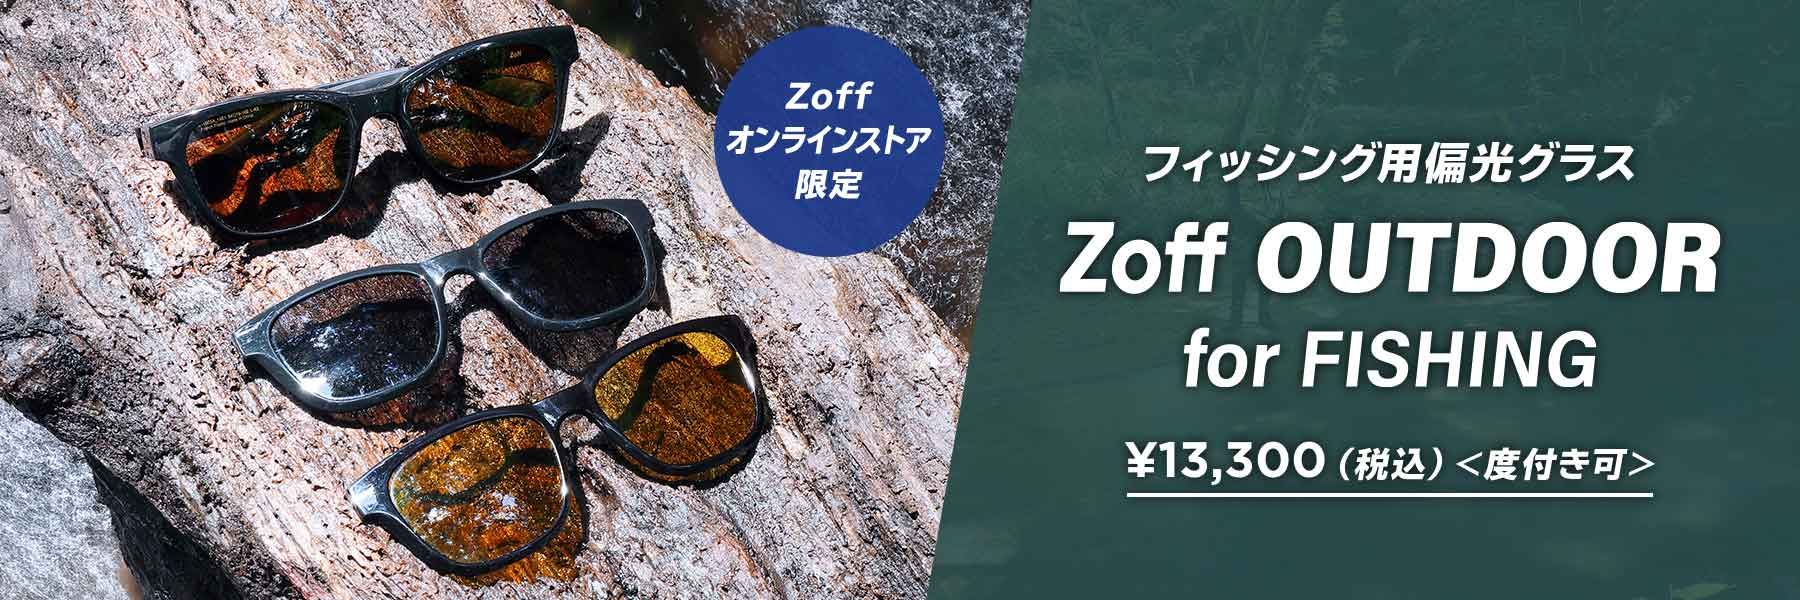 Zoff OUTDOOR for FISHING